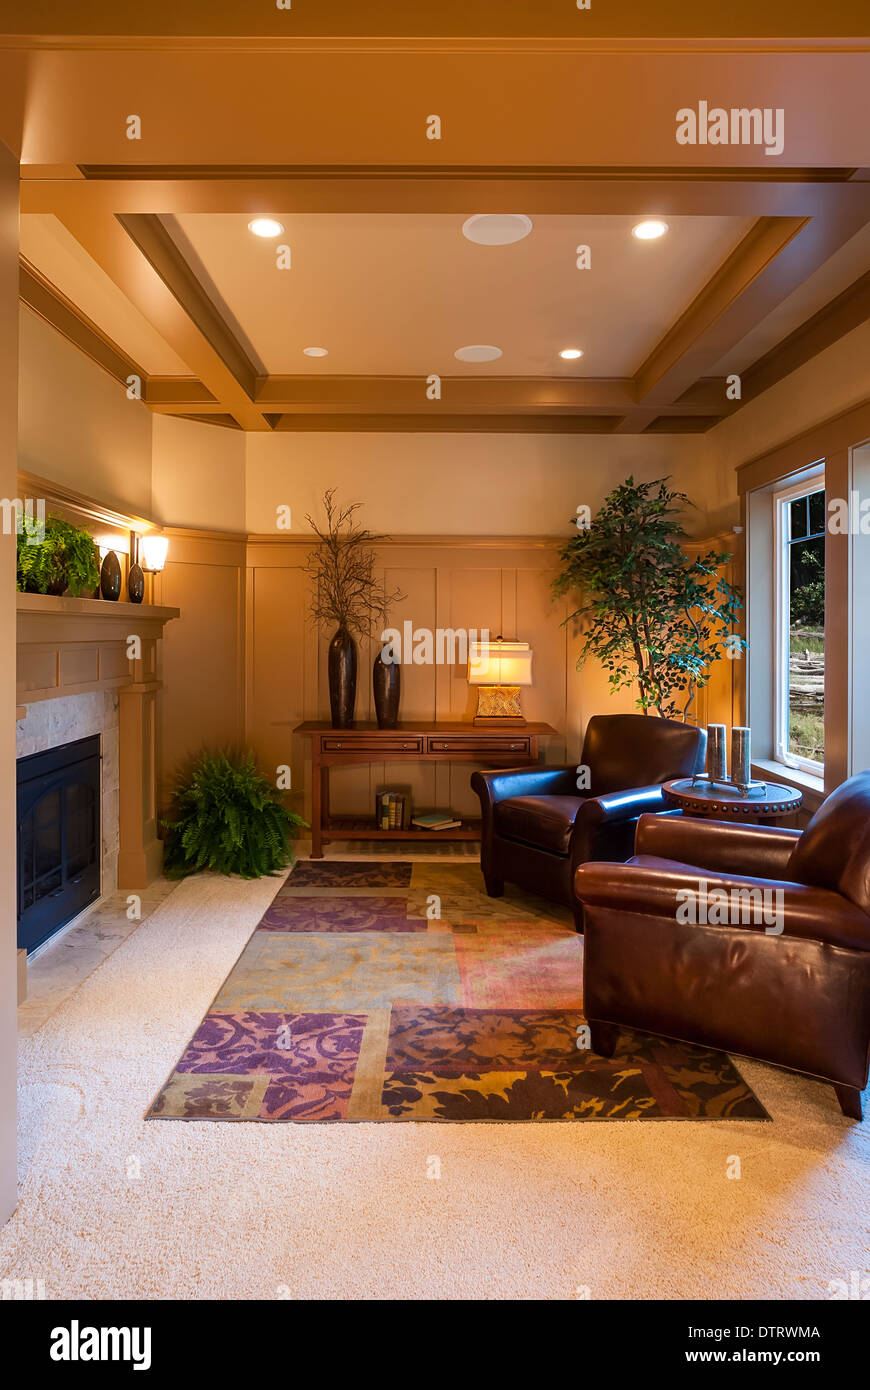 Sitting Room Or Parlor In A Luxury Home Showing Vaulted Ceiling.